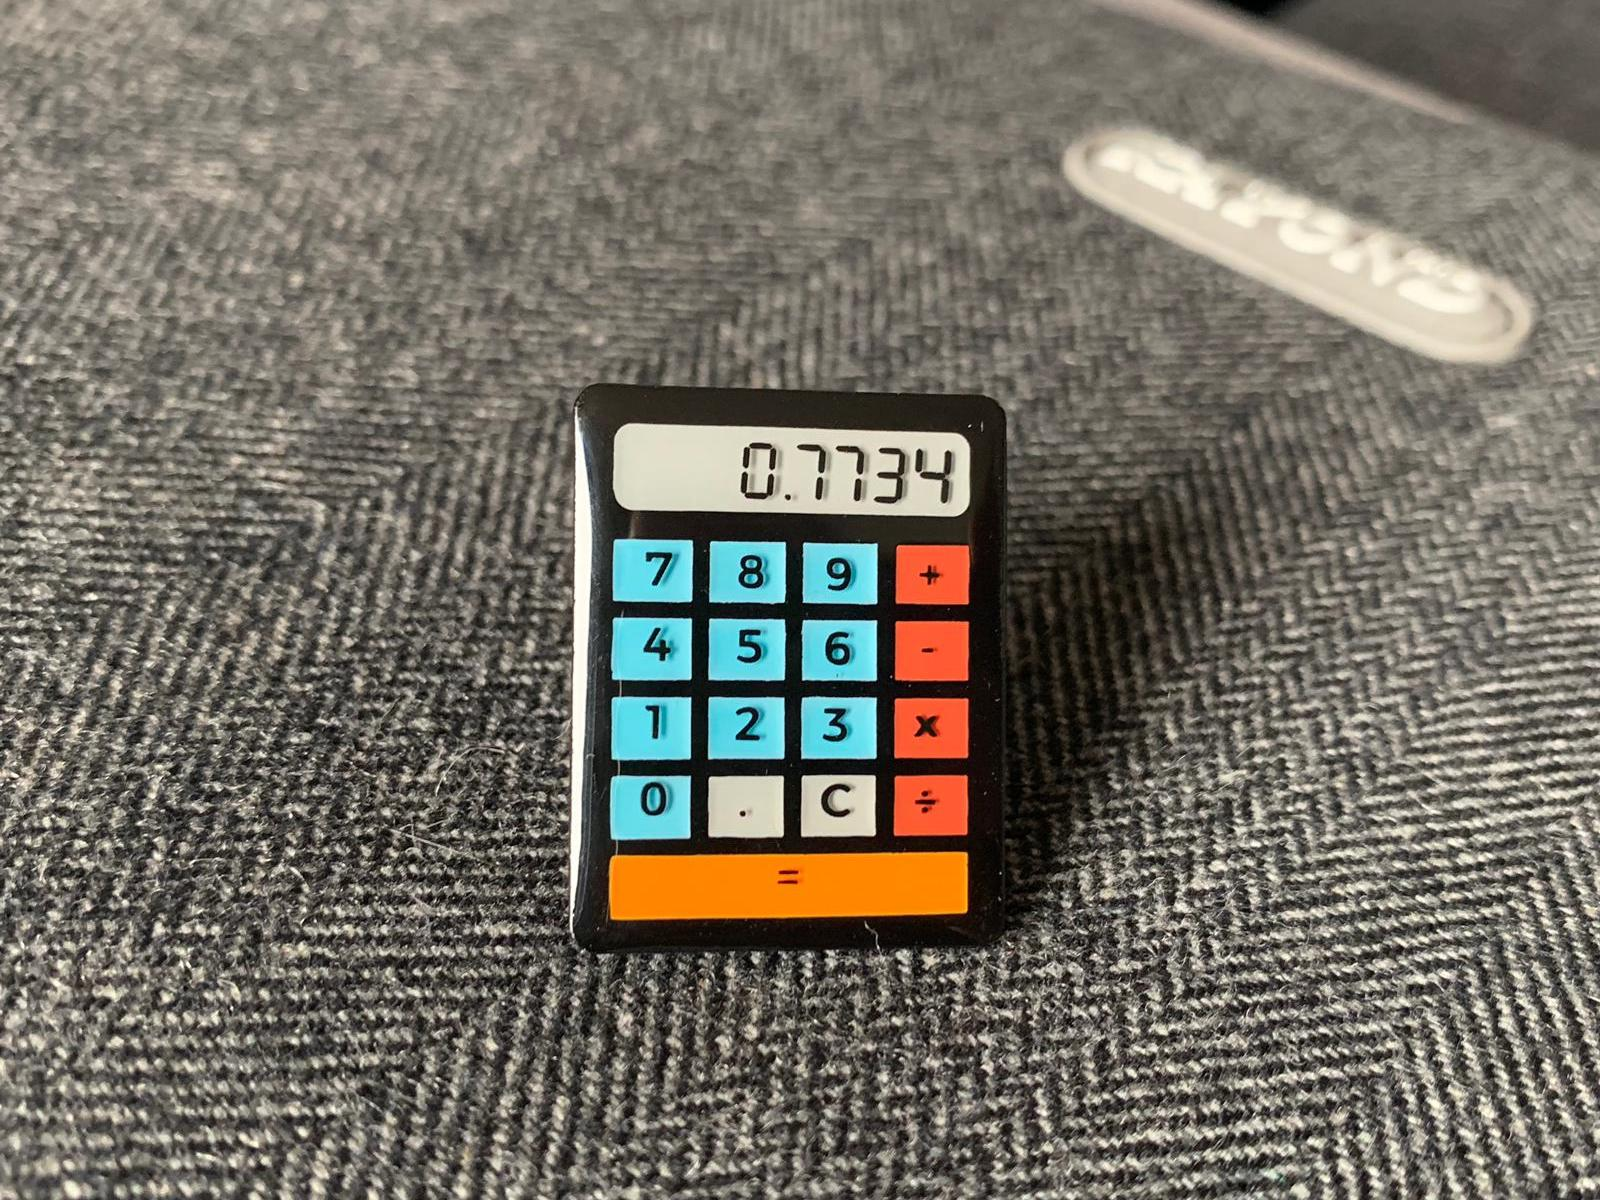 0.7734 Calculator Pin Badge